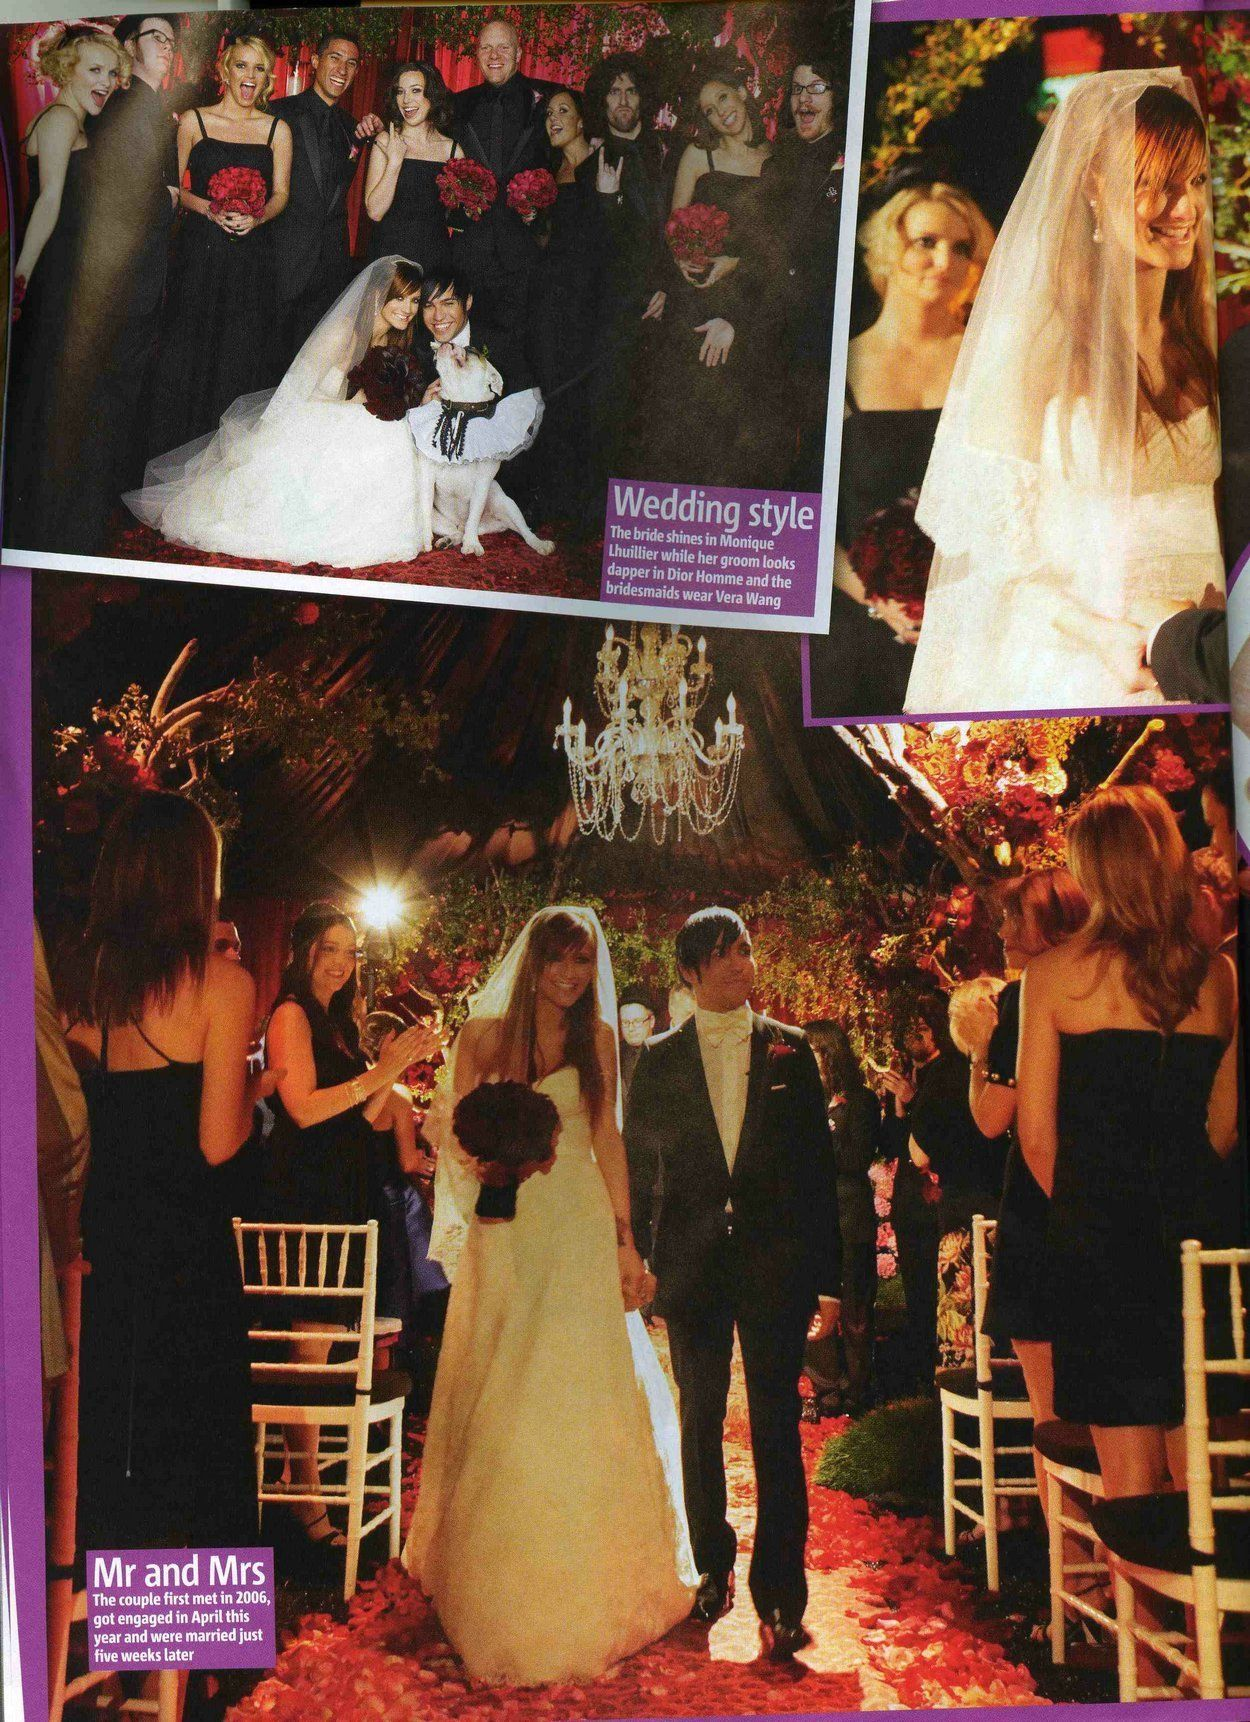 Pete Wentz And Ashlee Simpson But A Beautiful Wedding Love The Darker Fl Oh Yes What Shame Poor Grooms Bride Is